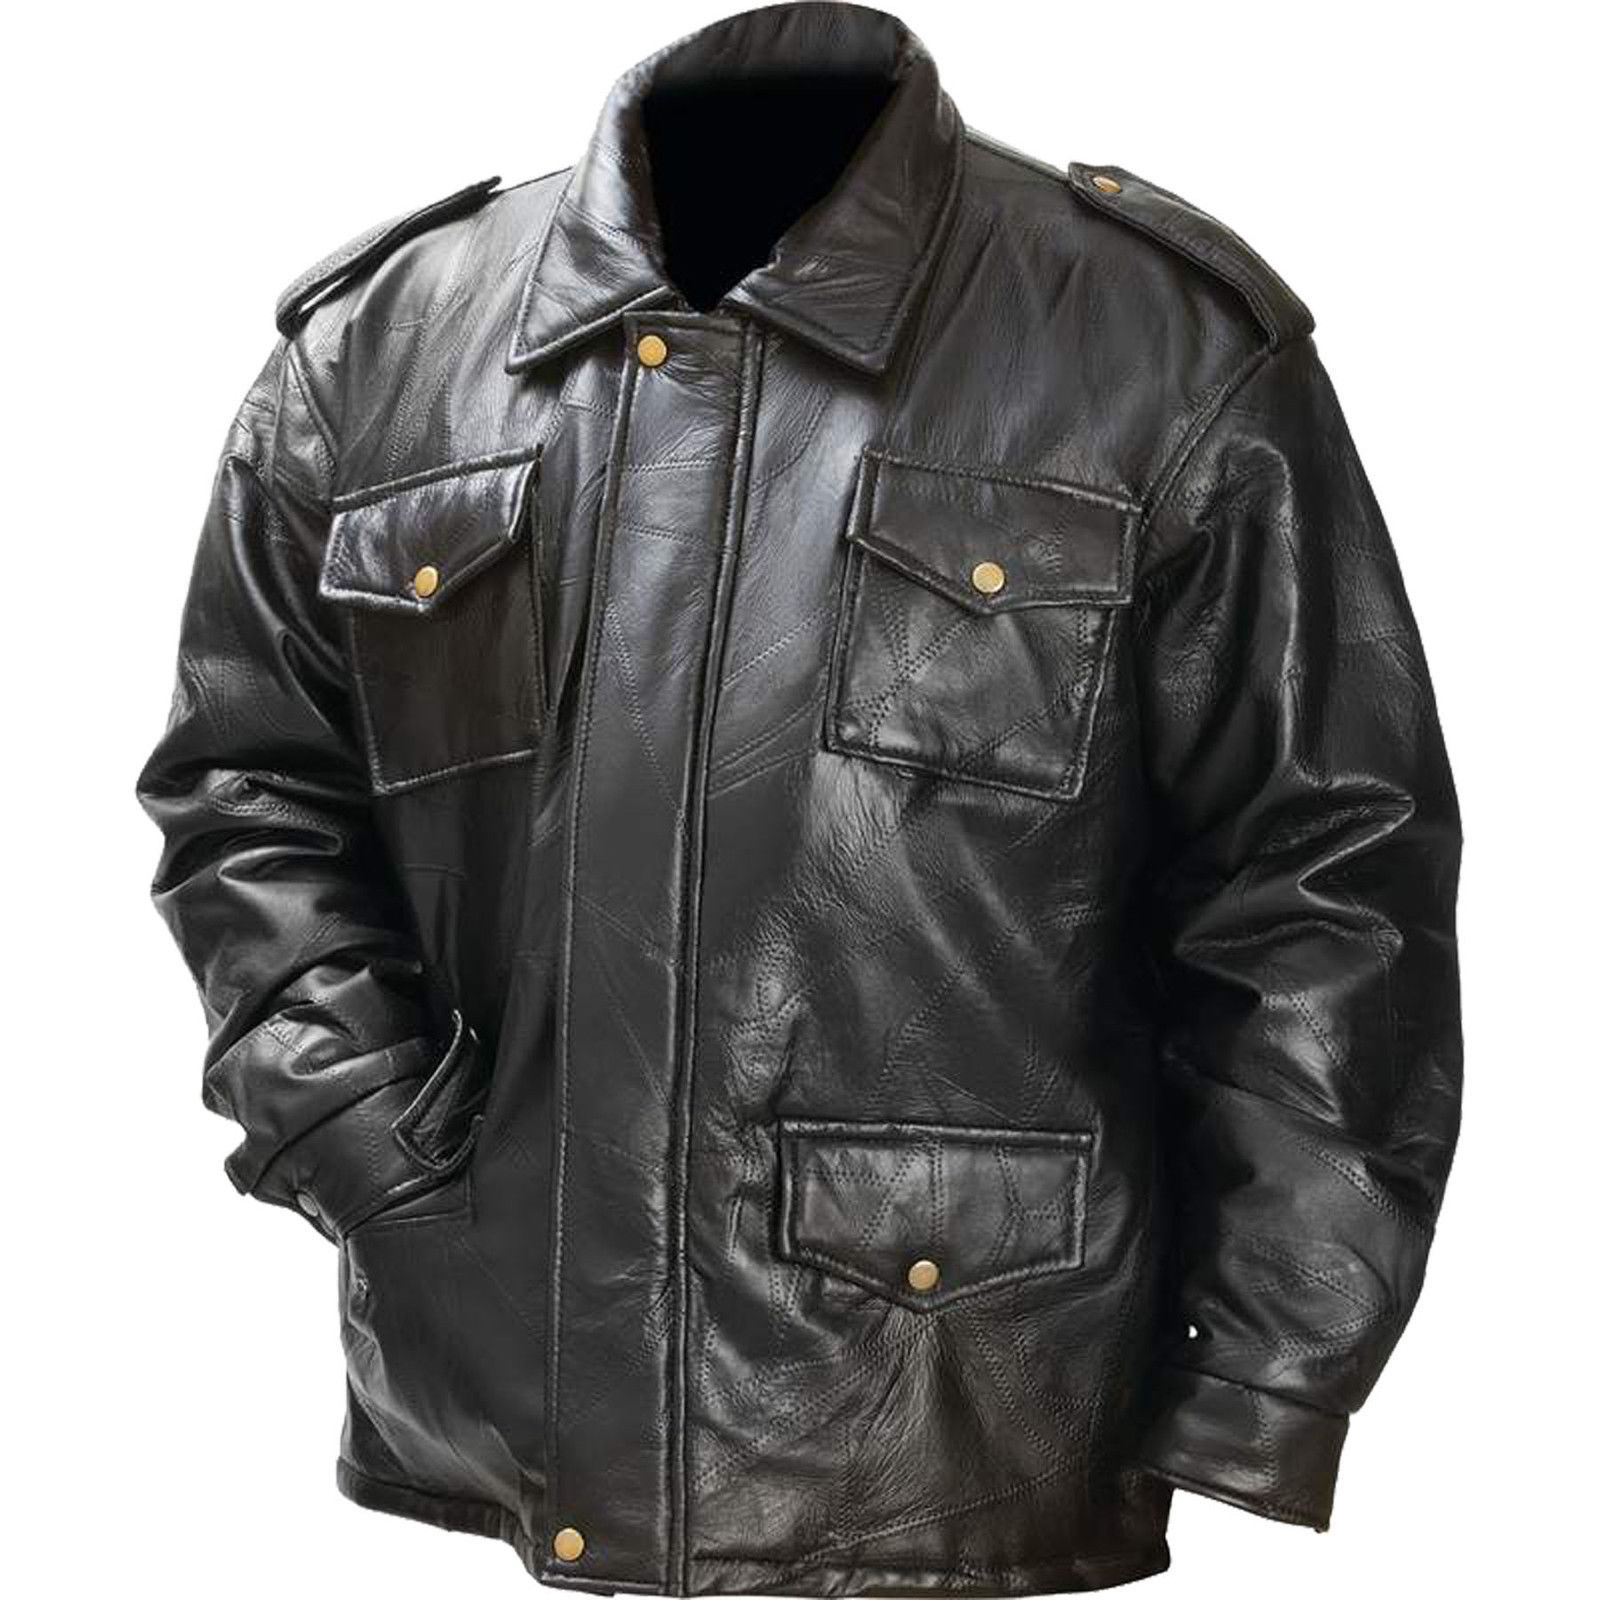 Mens Black Leather Field Jacket Zipper Closure Epaulets 4 Exterior Pockets Lined